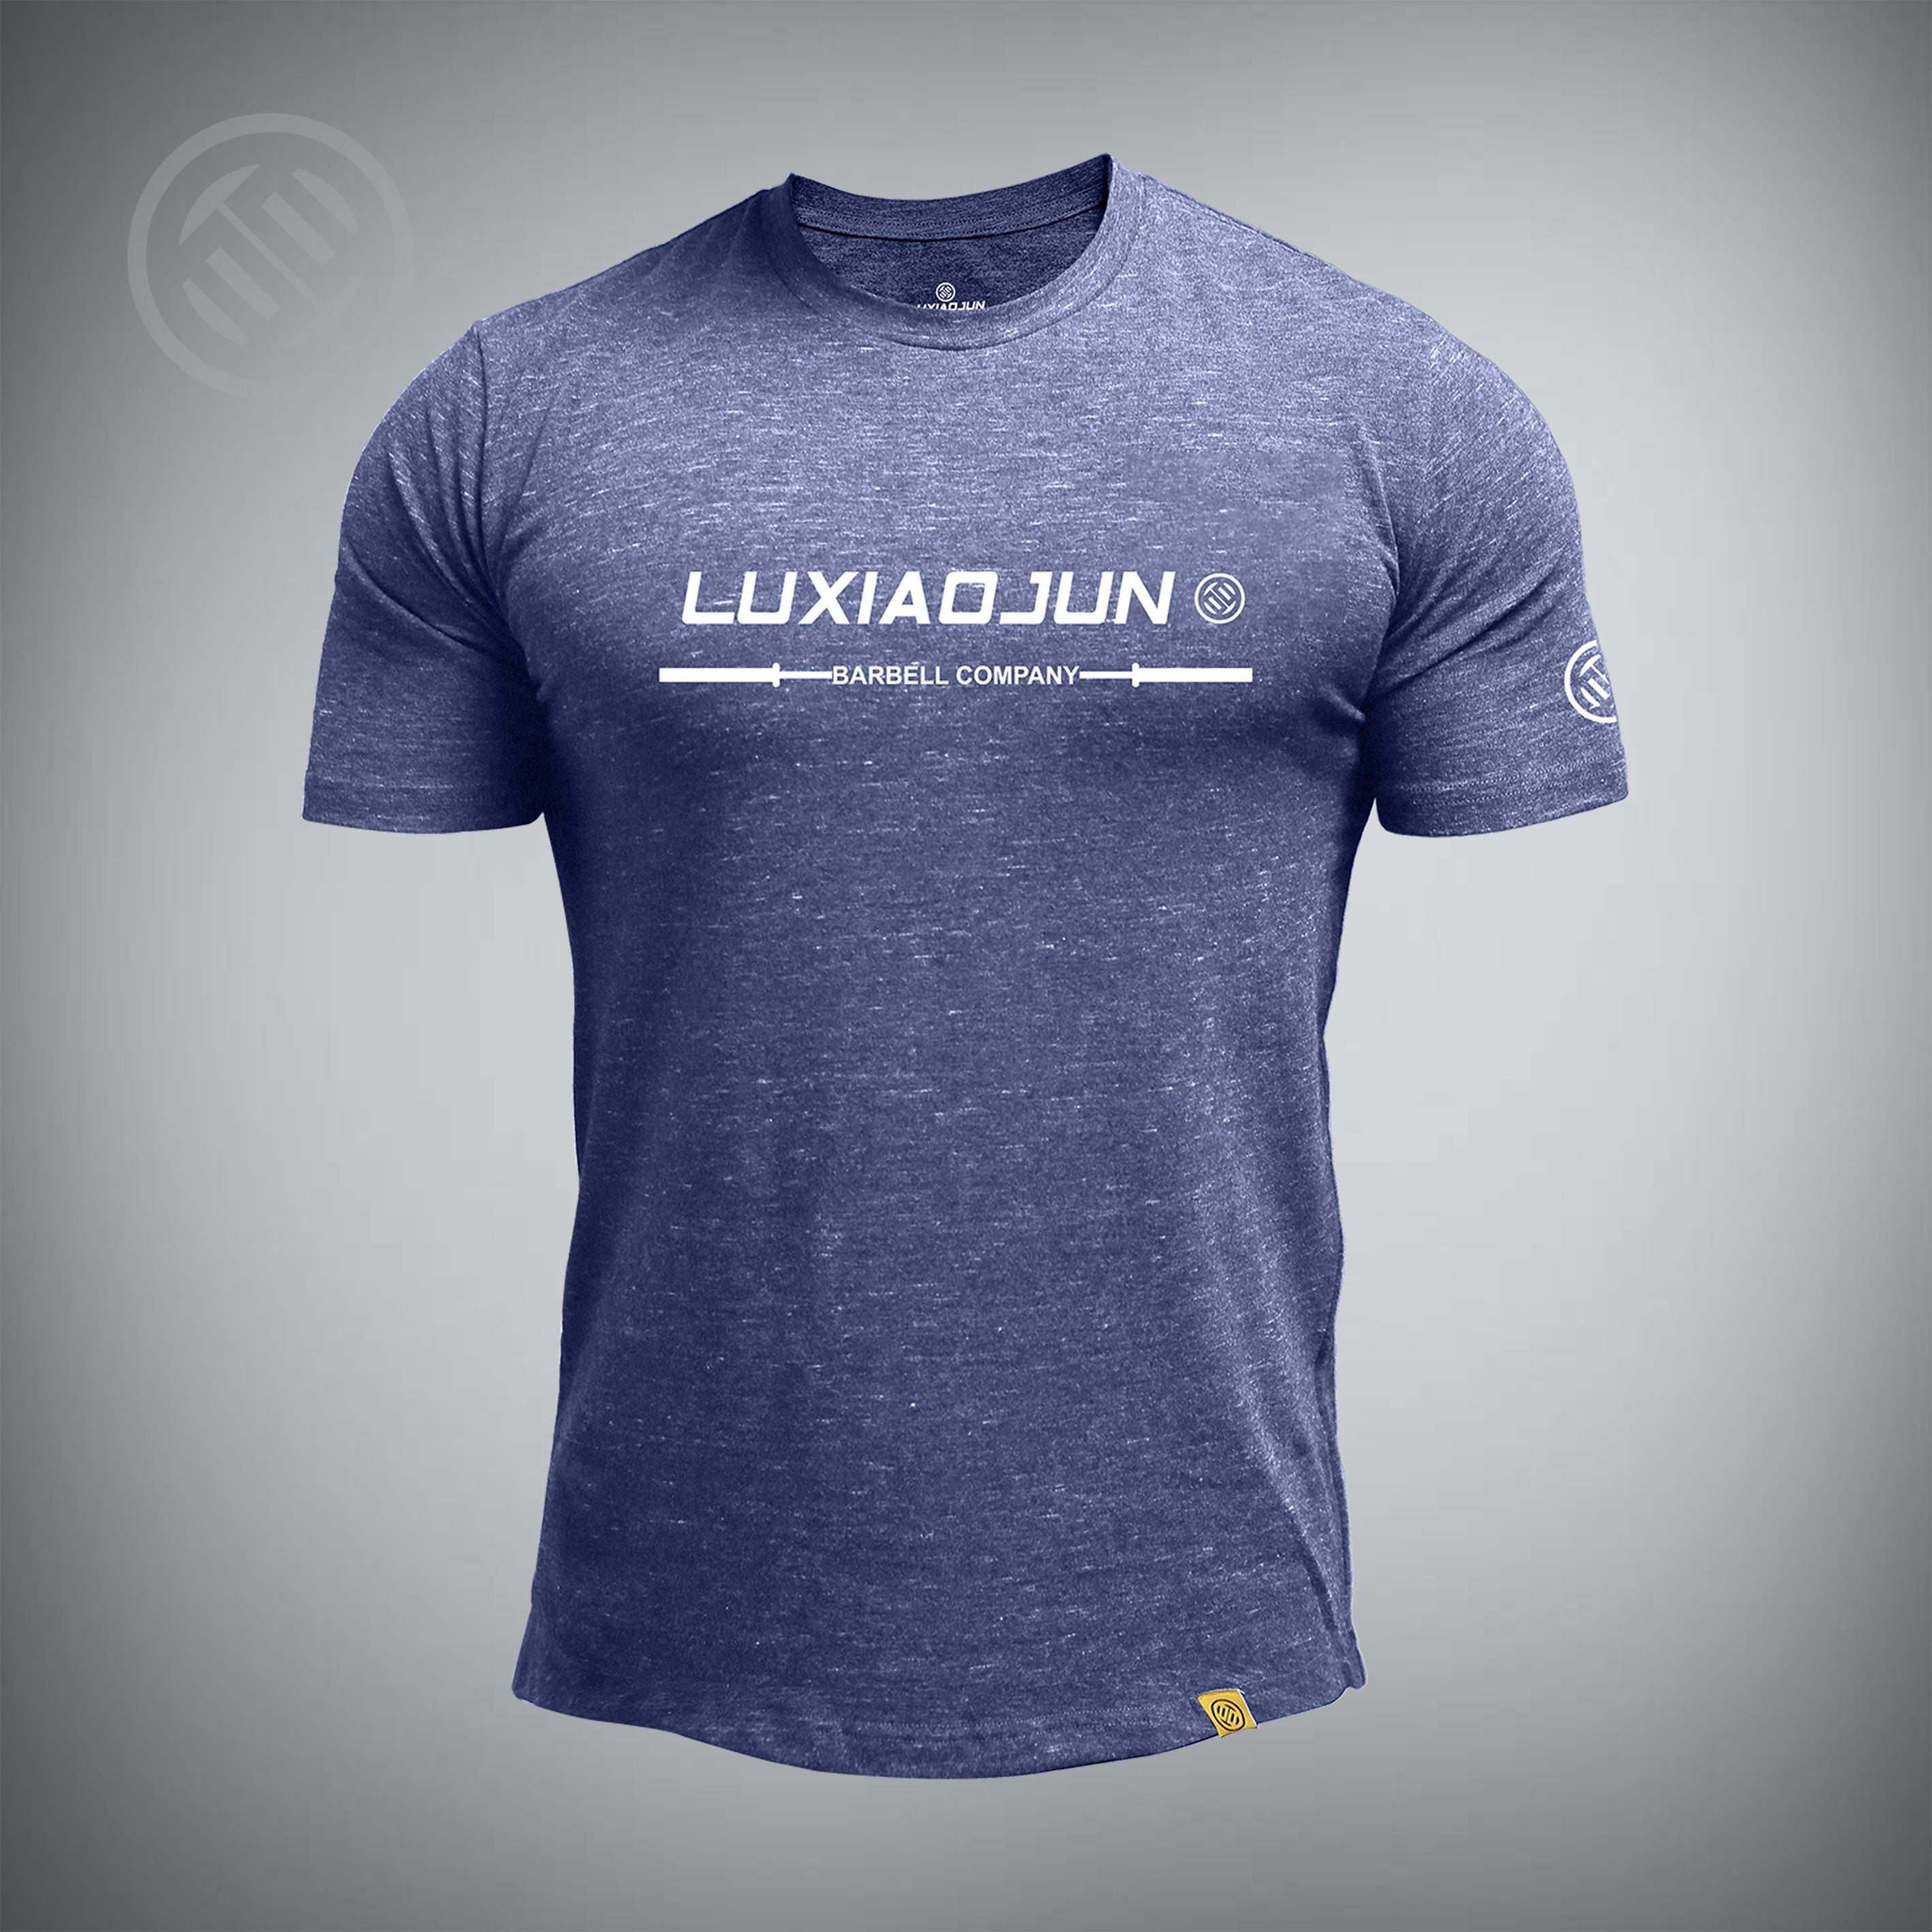 LUXIAOJUN Basic T-shirt - LUXIAOJUN Weightlifting